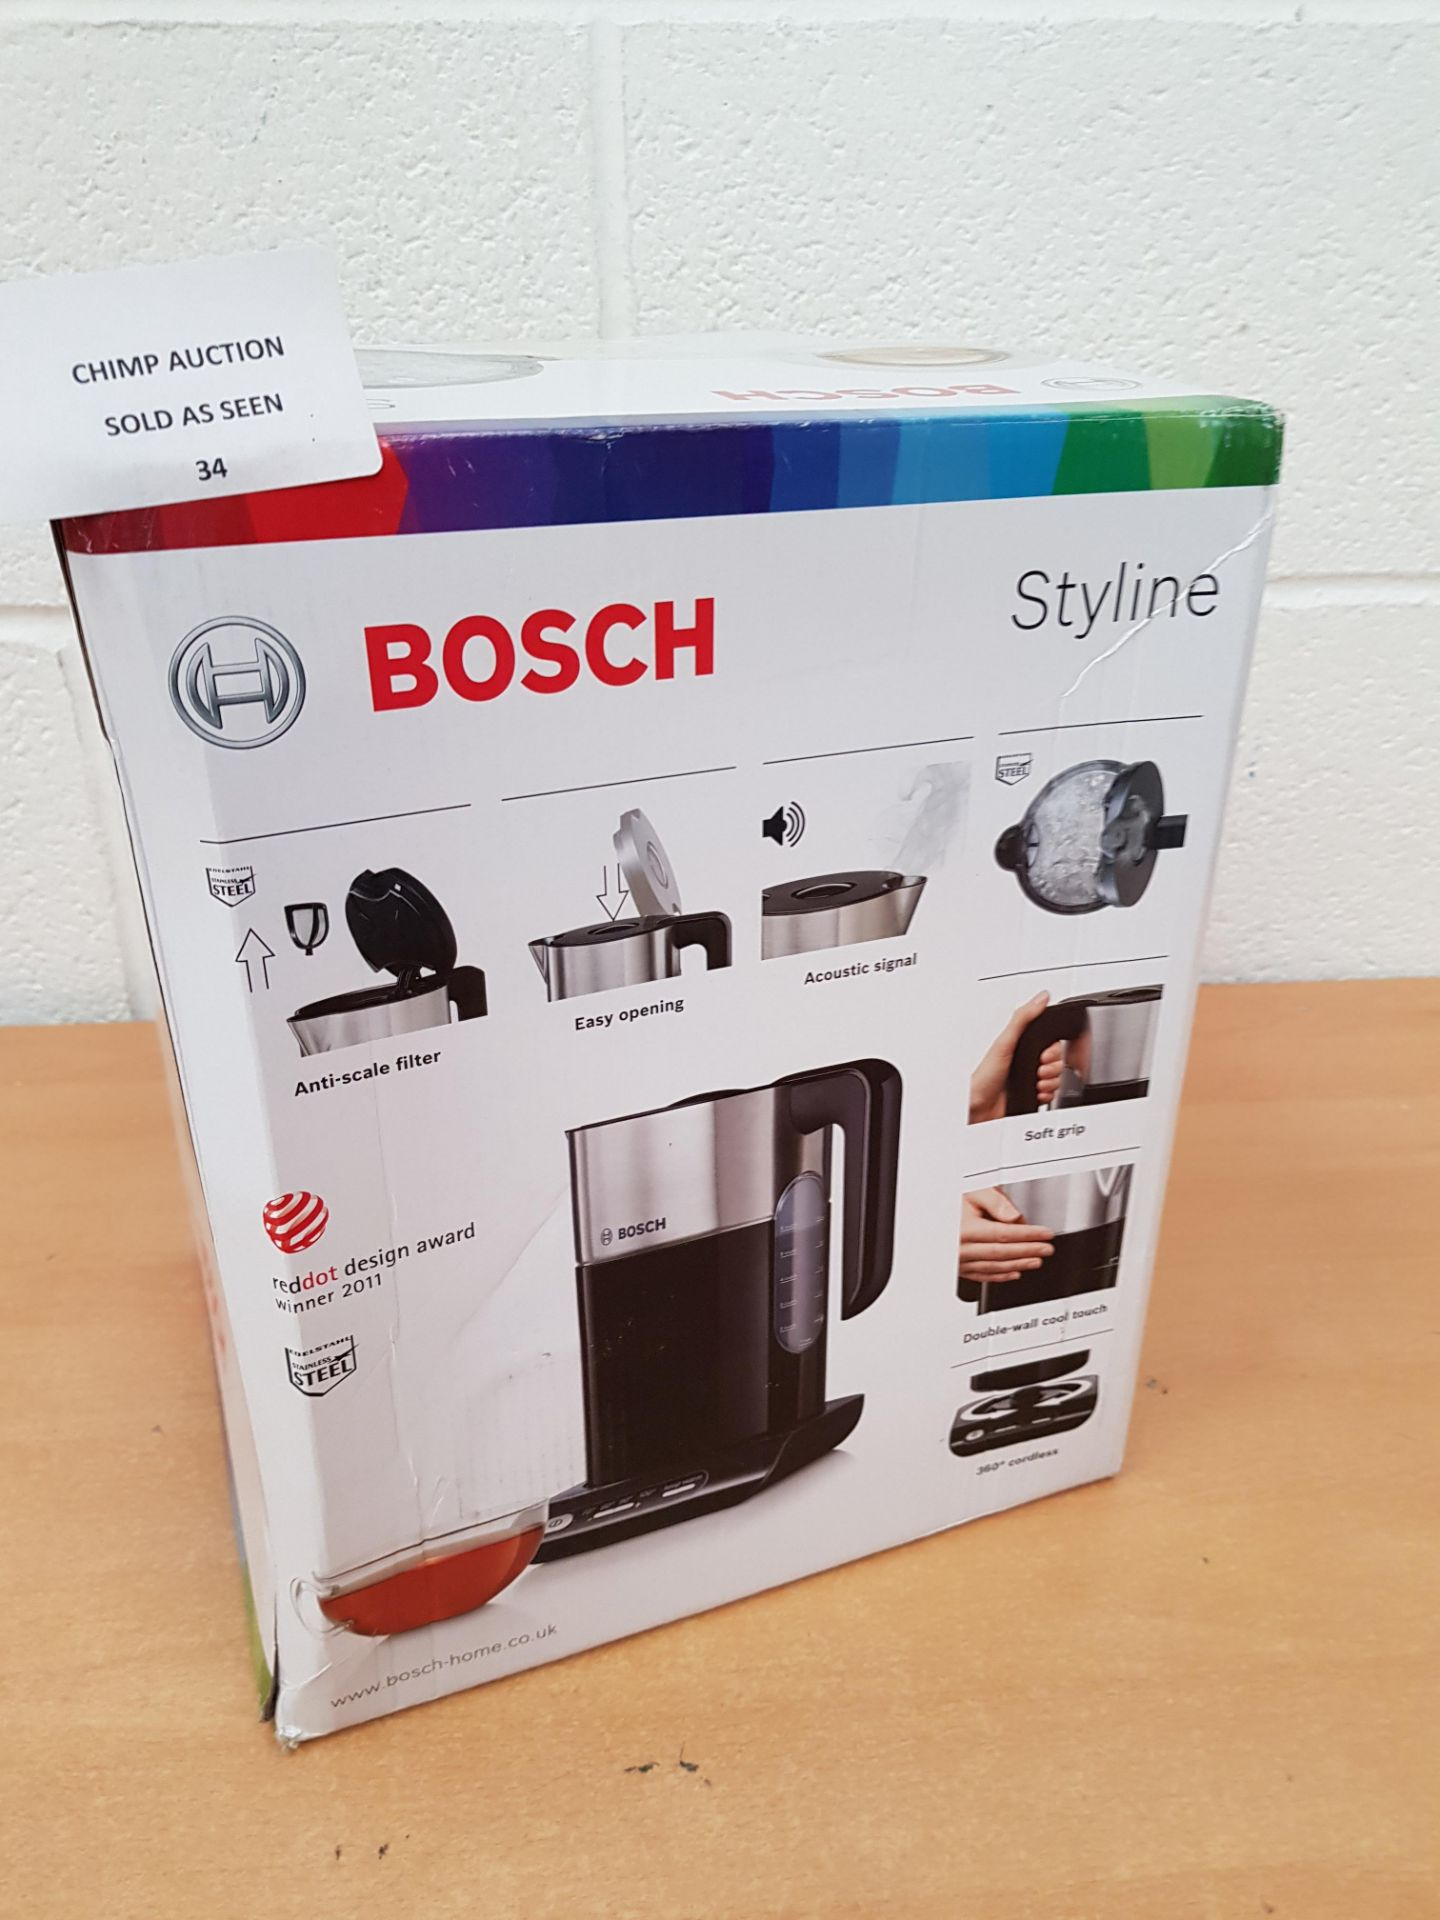 Lot 34 - Bosch TWK8633 Styline Collection Cordless Jug Kettle, 1.5 L RRP £69.99